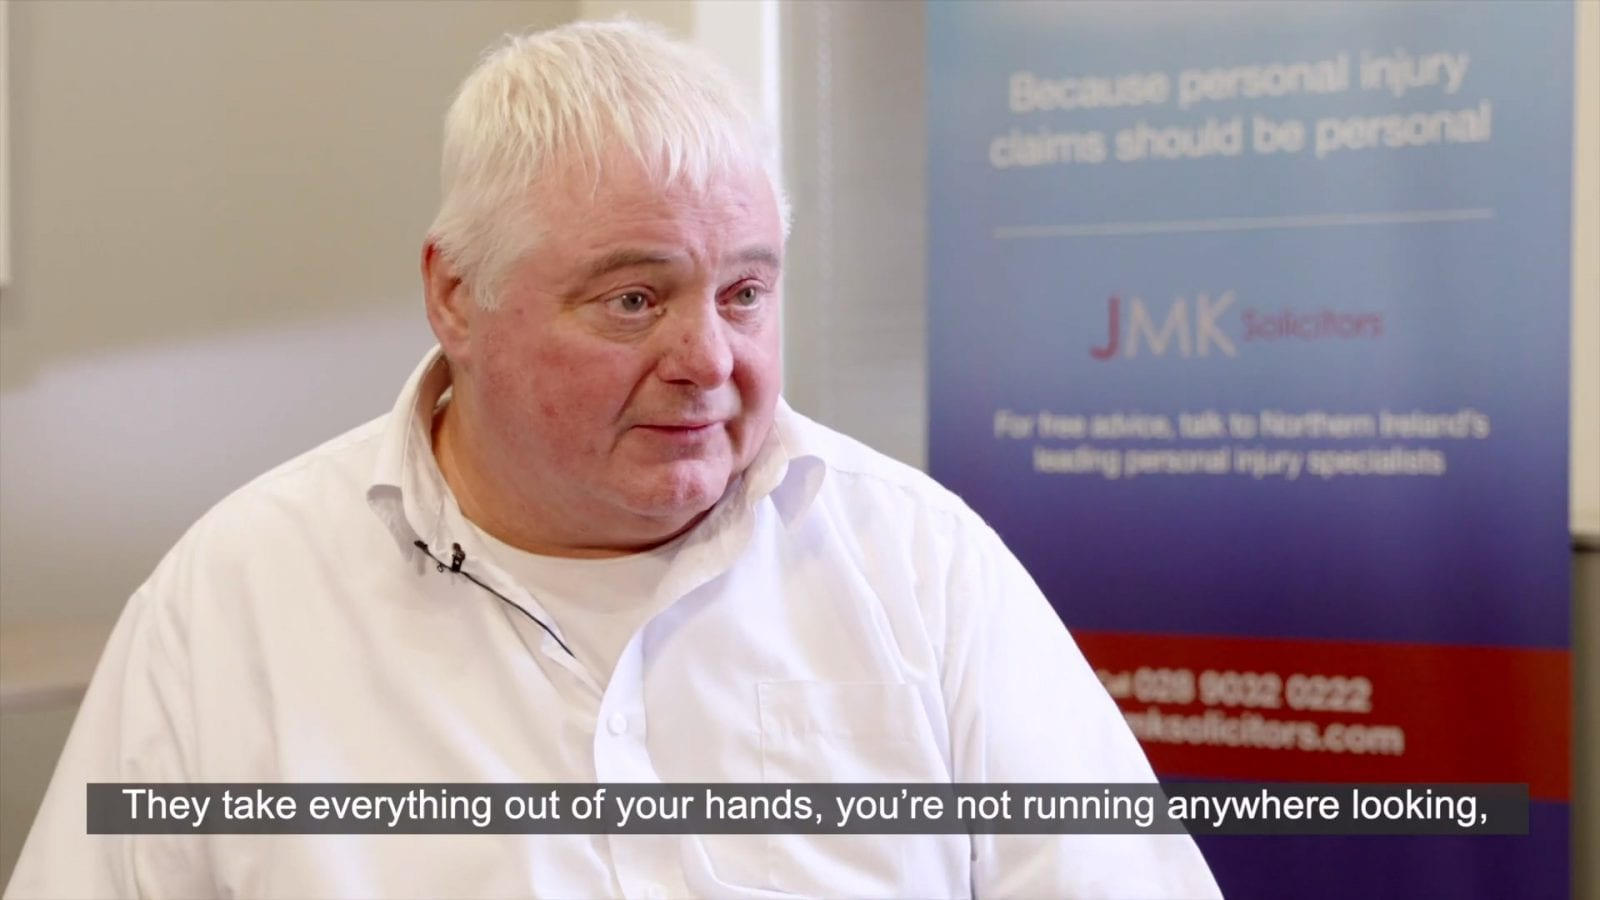 JMK Solicitors Number 1 Personal Injury Specialists Belfast and Newry - Customer Testimonial